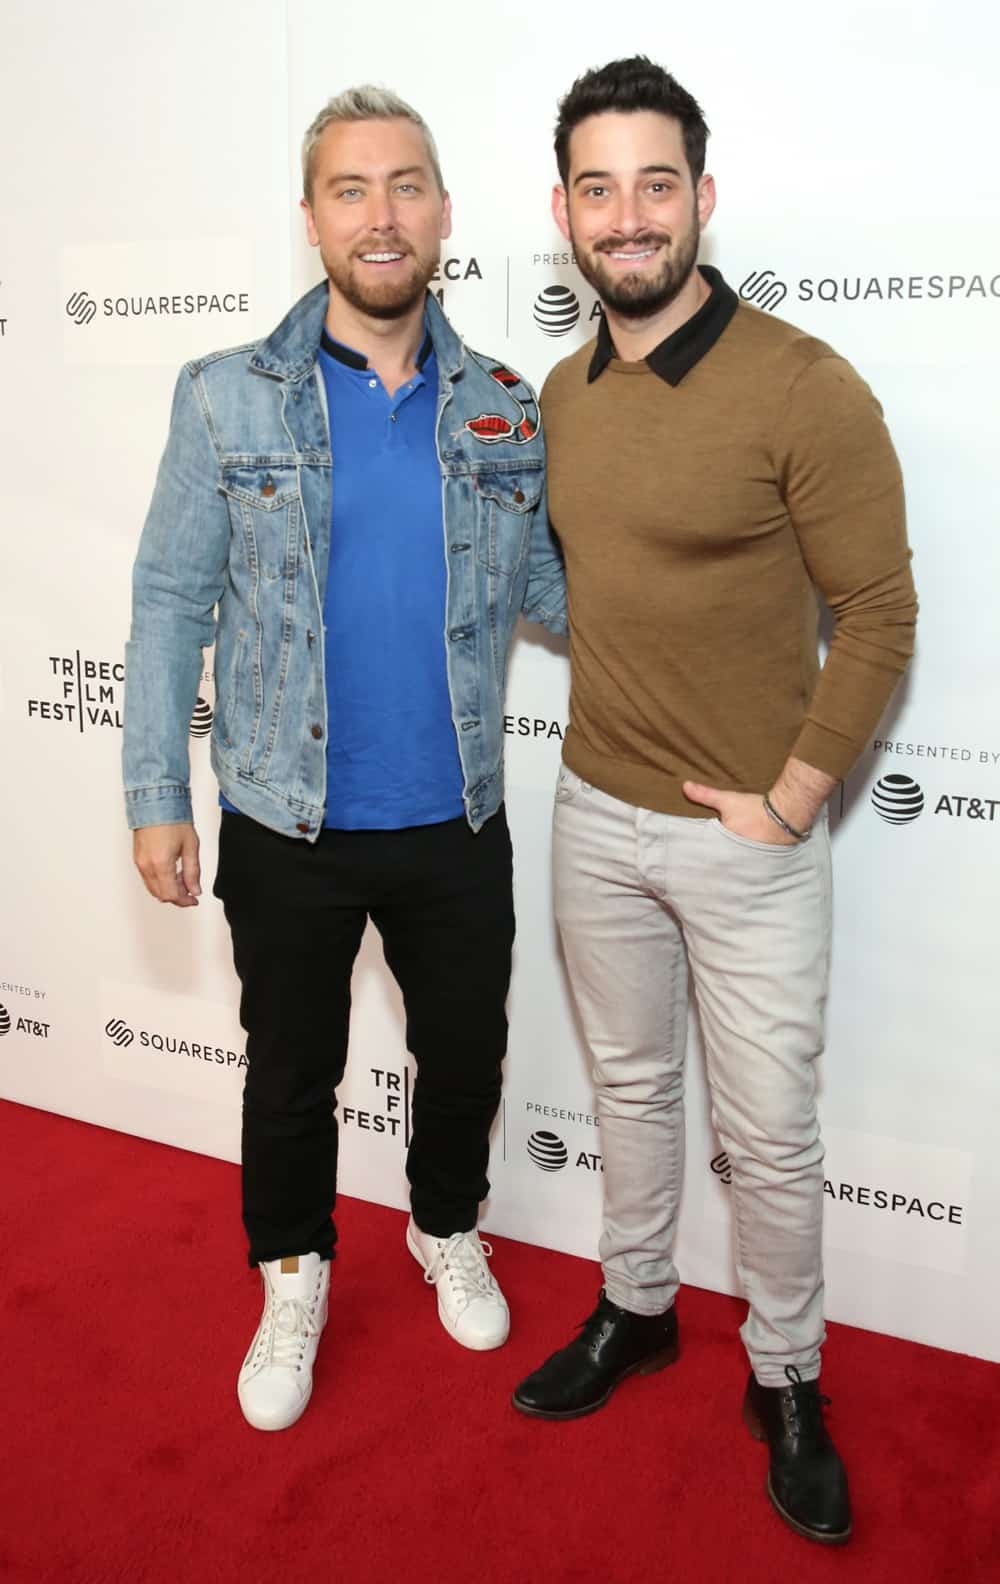 Lance Bass and Michael Turchin World Premiere Of 'GAY CHORUS DEEP SOUTH' Documentary, Developed And Produced By Airbnb At The 2019 Tribeca Film Festival